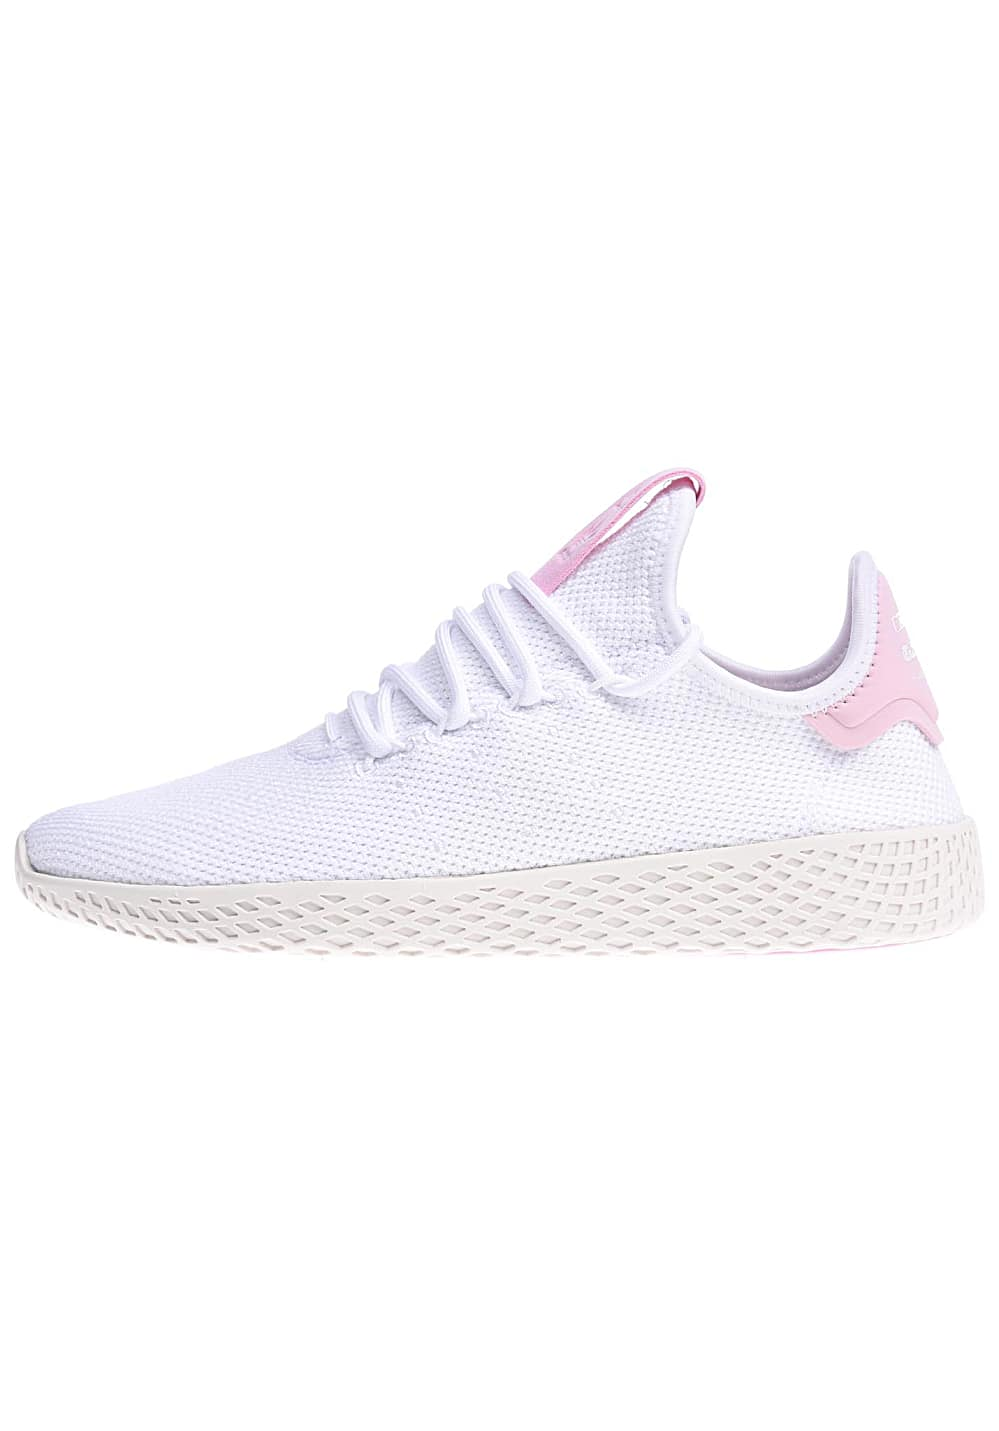 adidas Originals Pharrell Williams Tennis Hu - Sneaker für Damen - Weiß